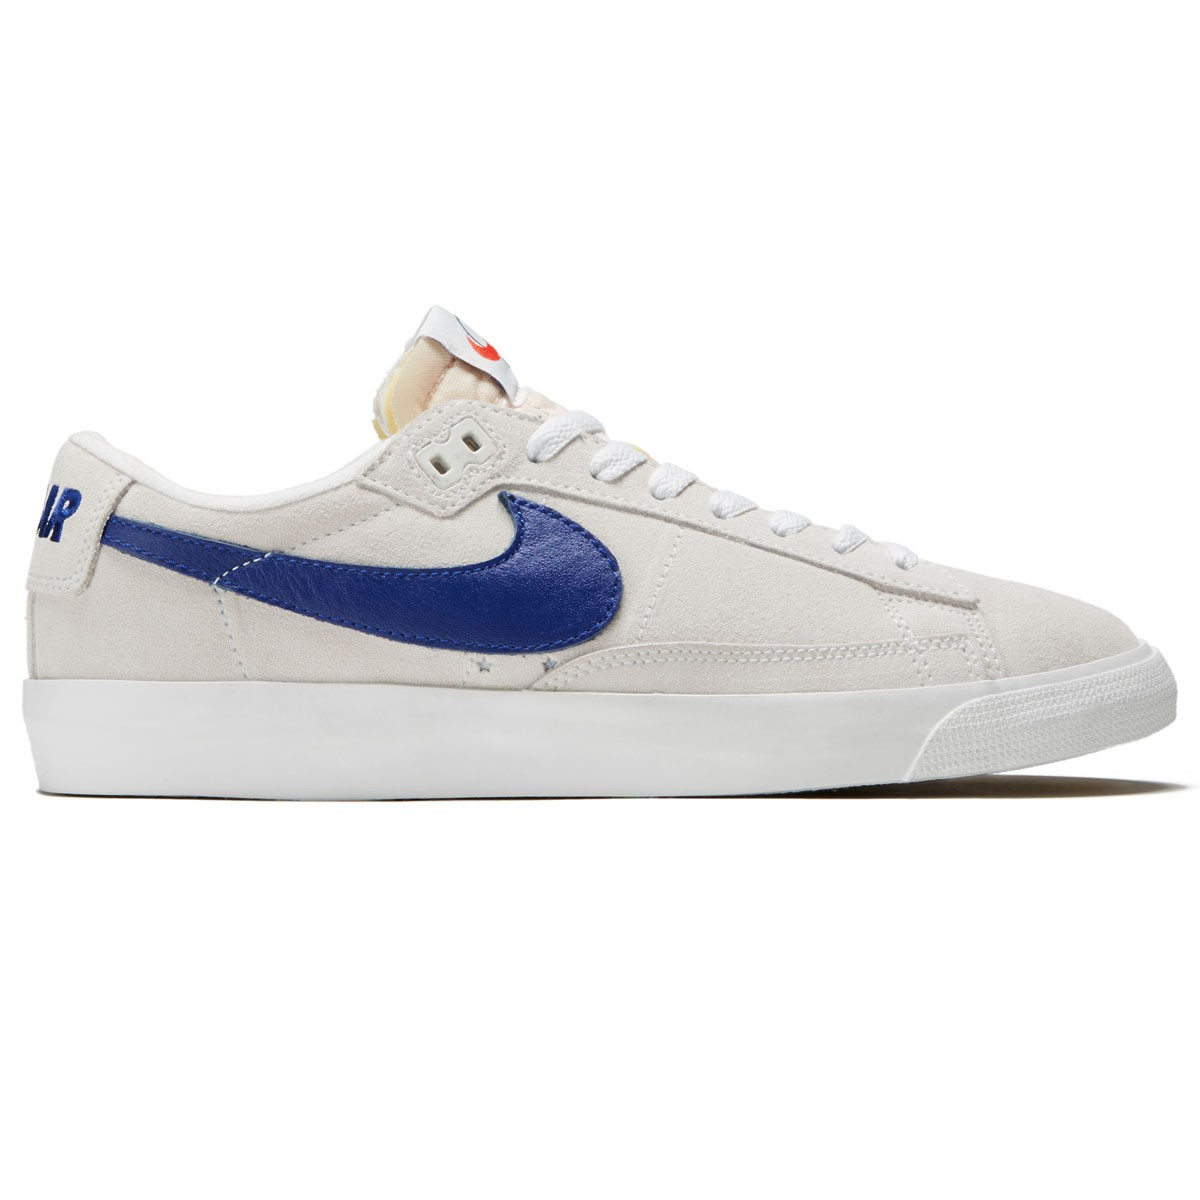 Nike SB x Polar Zoom Blazer Low GT QS Shoes